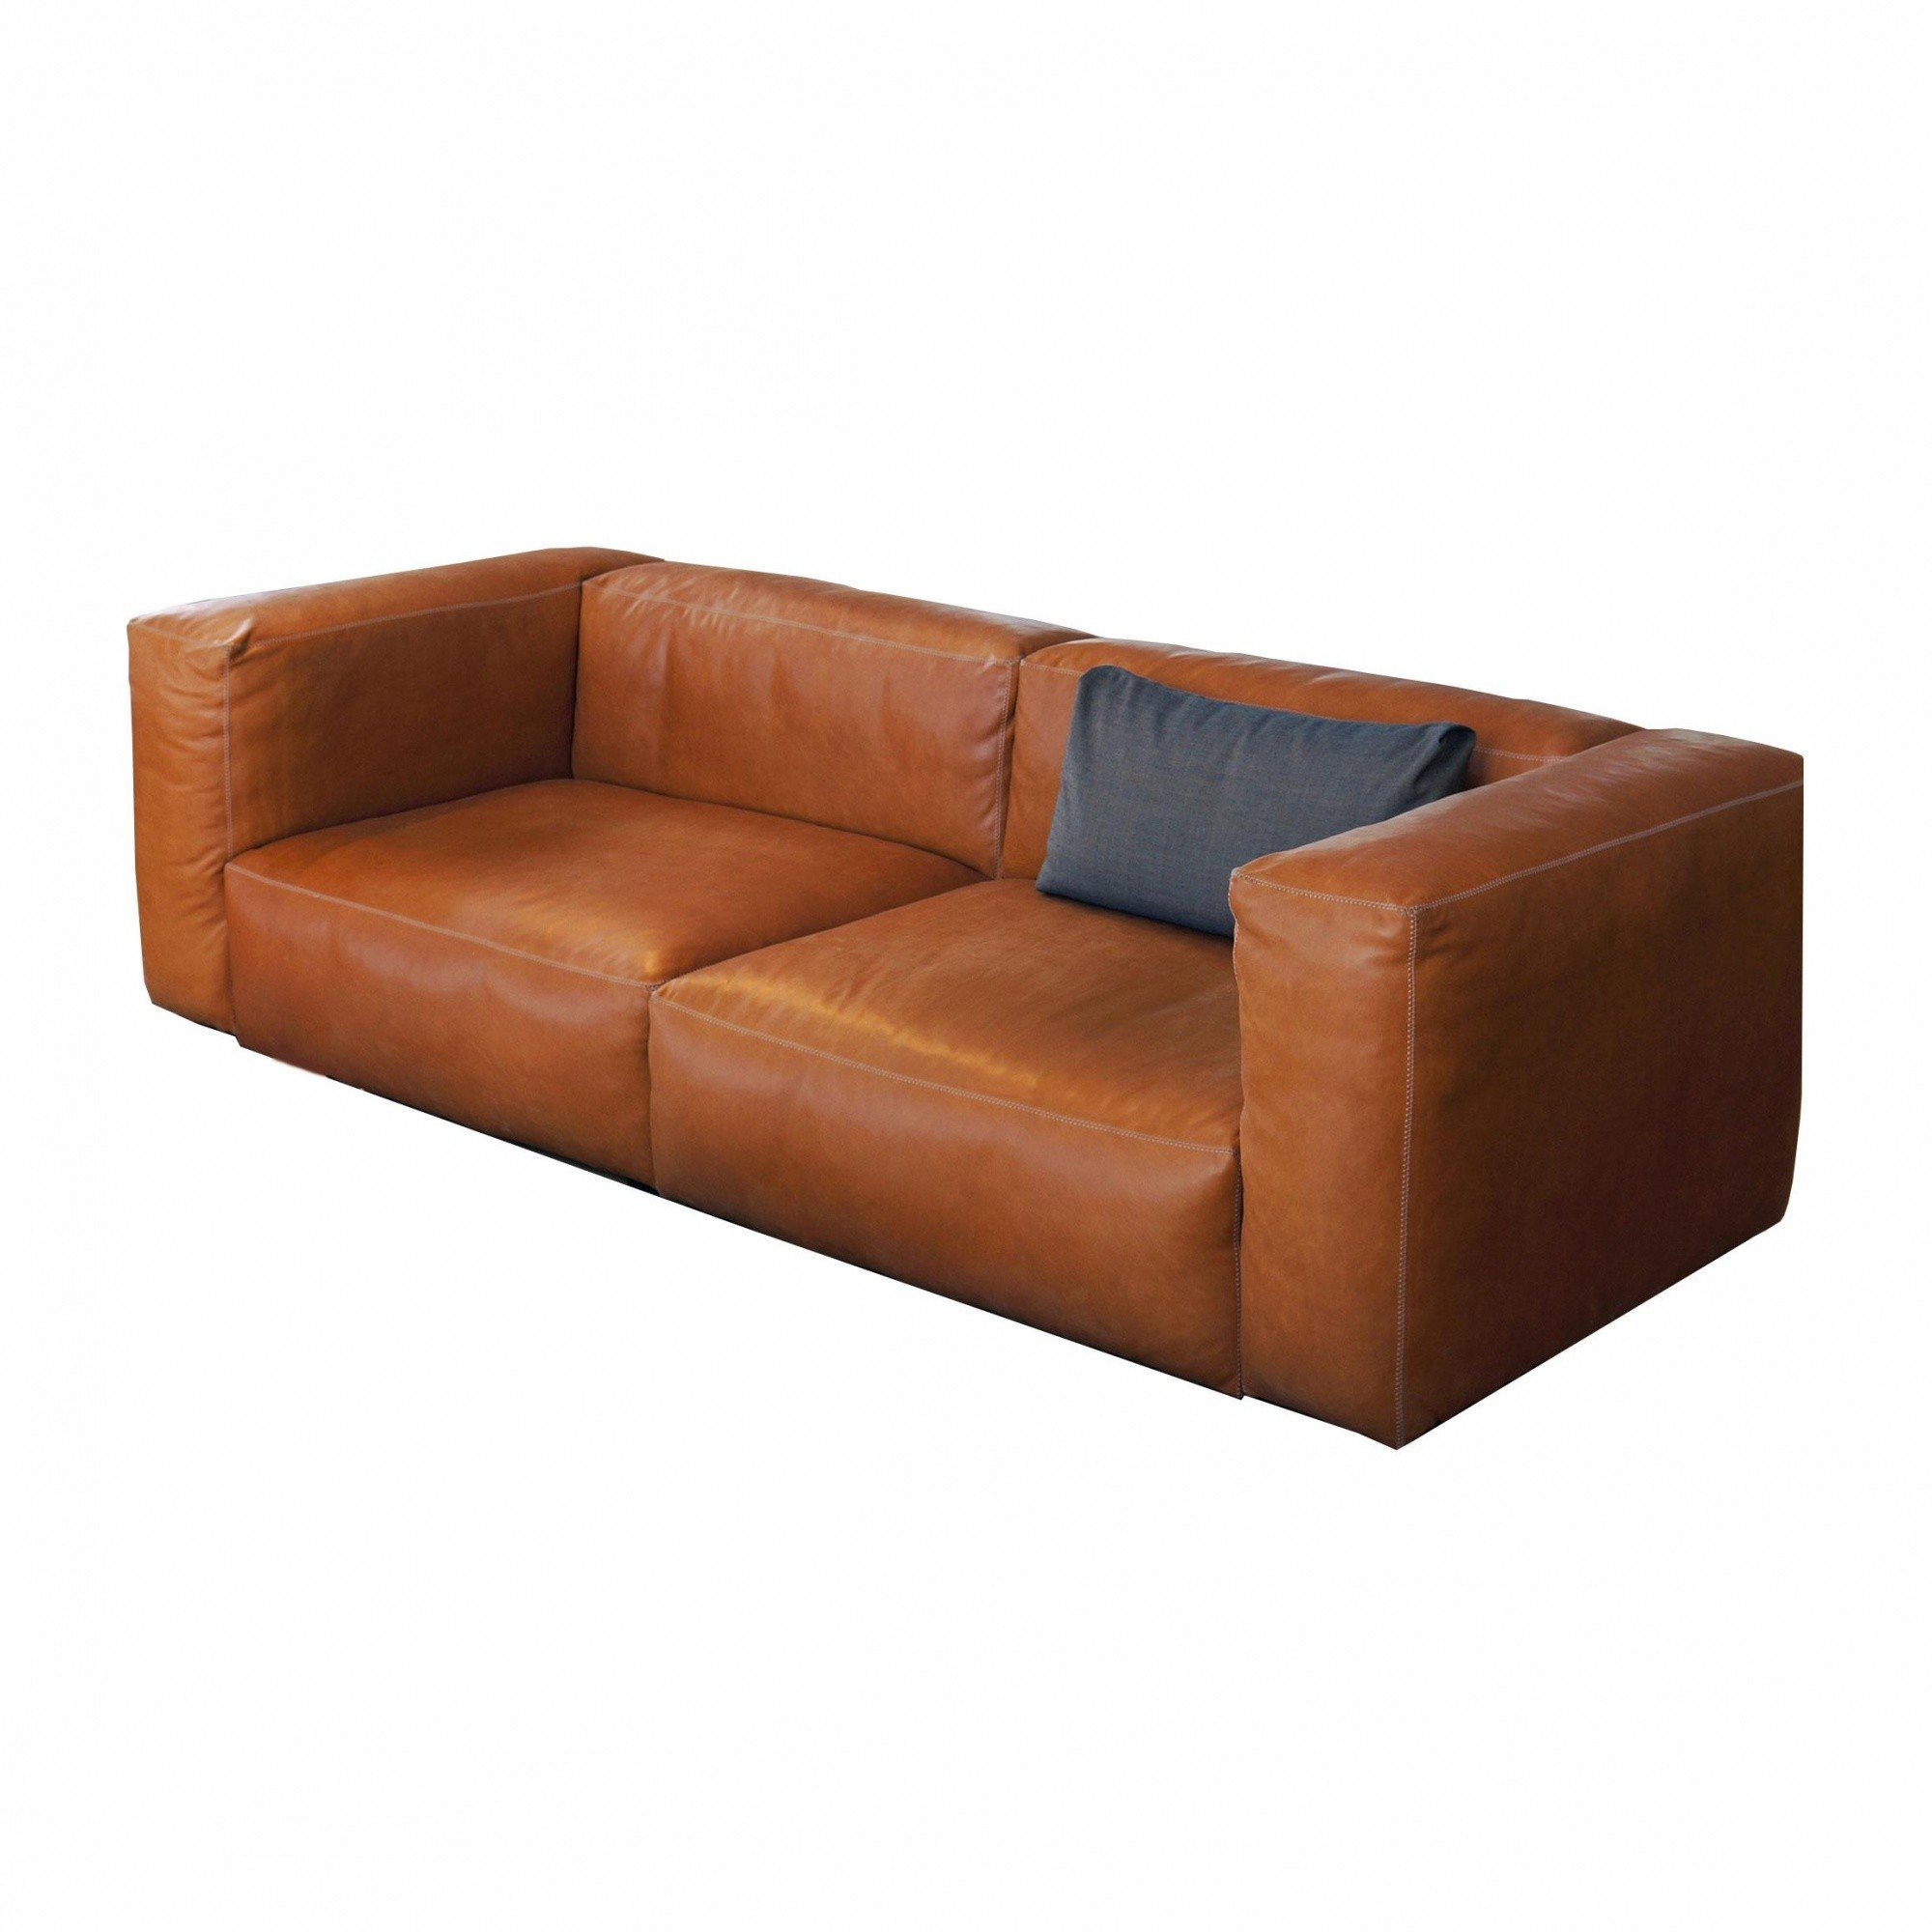 HAY Mags Soft 2,5 Seater Leather Sofa 228x95.5x67 | AmbienteDirect